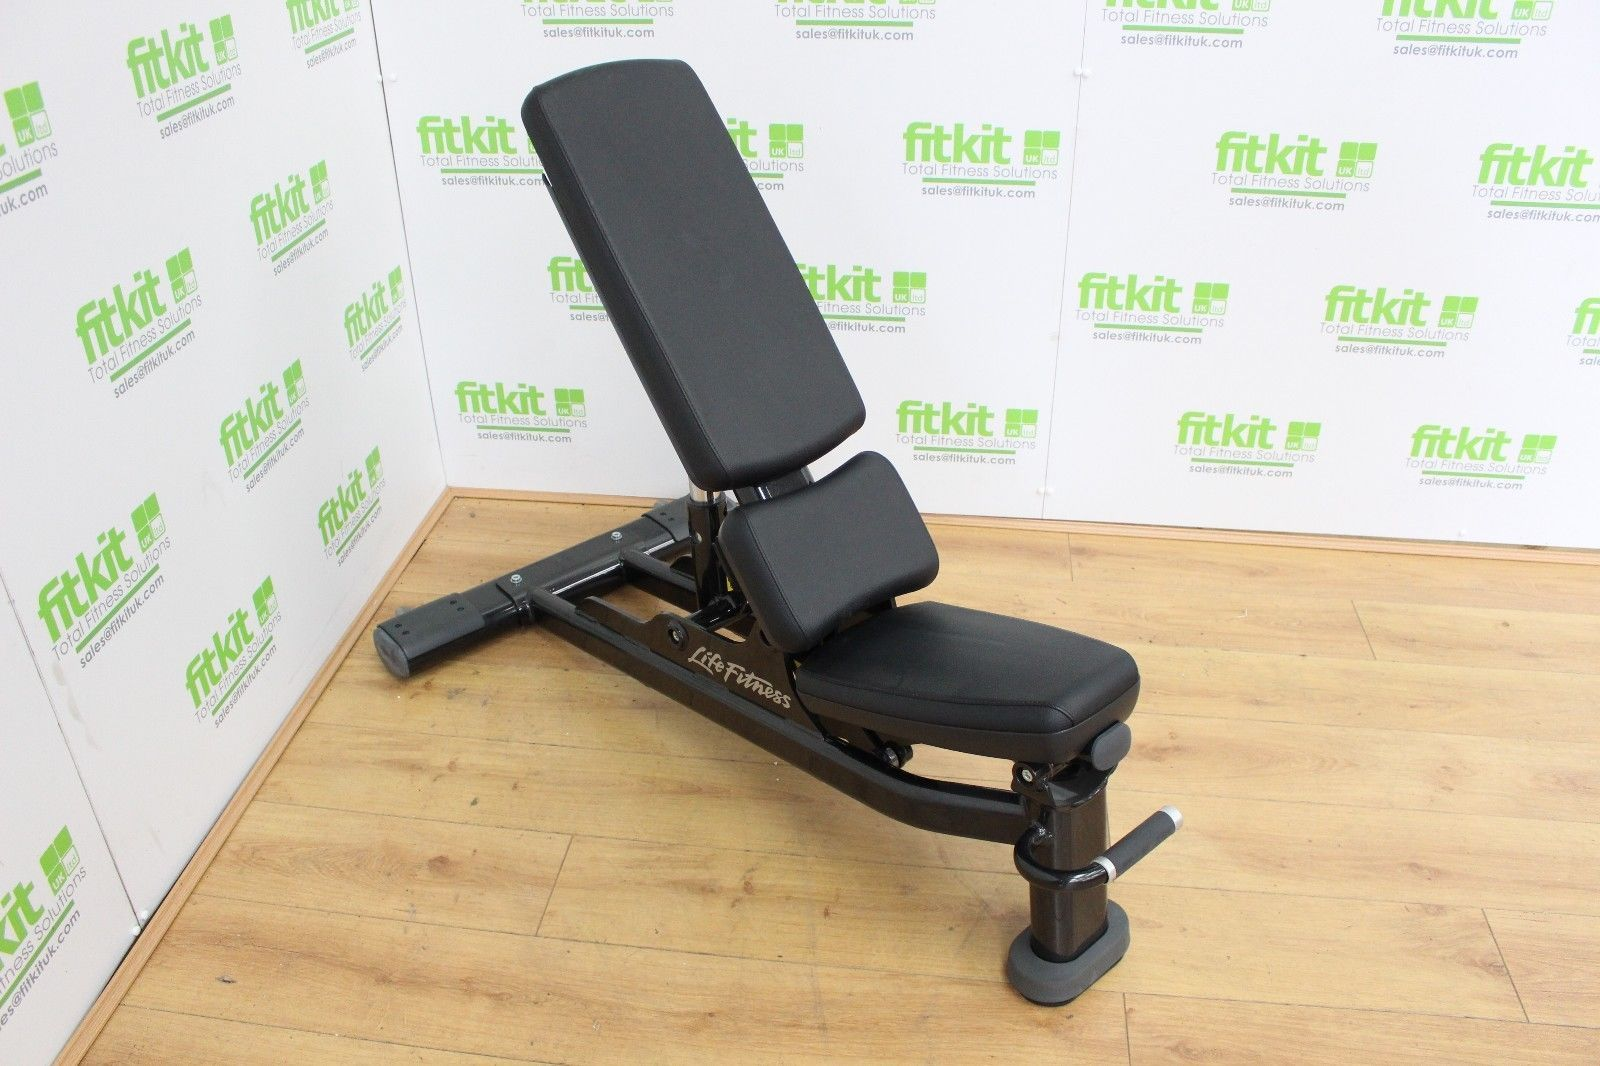 Life Fitness Signature Series Multi Adjustable Bench Commercial Gym Equipment Ebay Commercial Gym Equipment Gym Equipment For Sale Home Workout Equipment